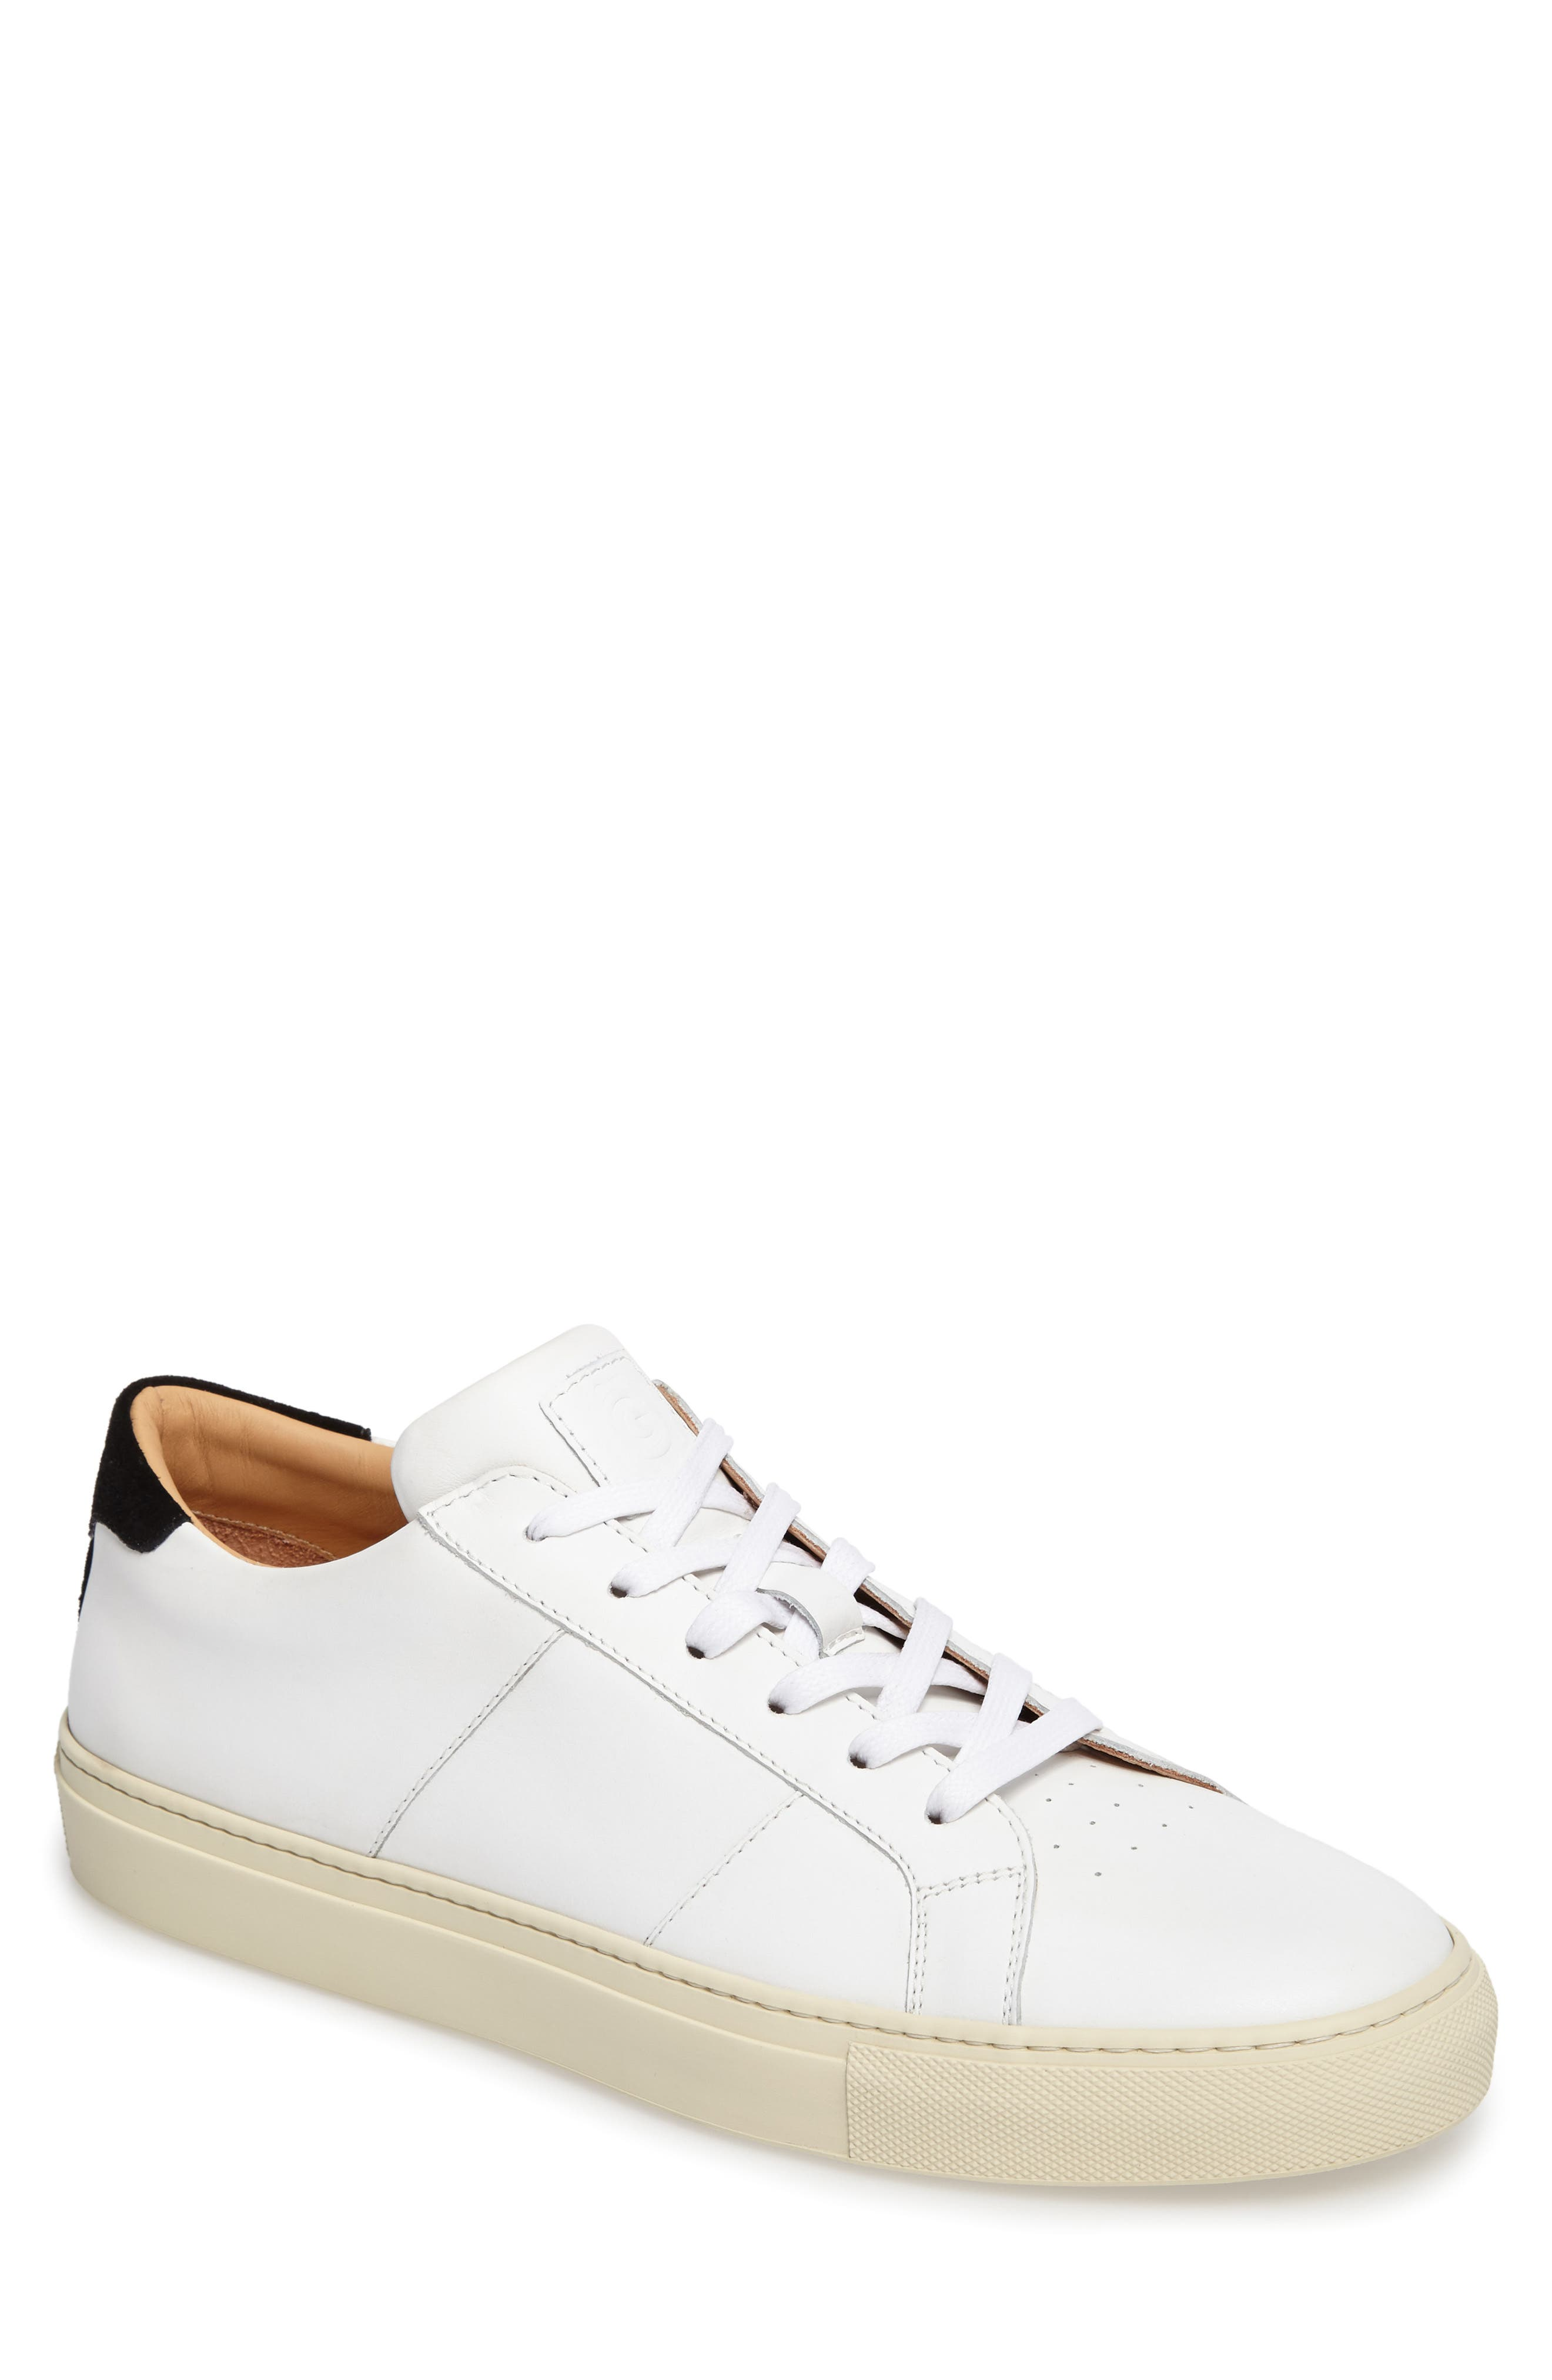 Royale Vintage Low Top Sneaker,                         Main,                         color, White/ Cream/ Black Leather